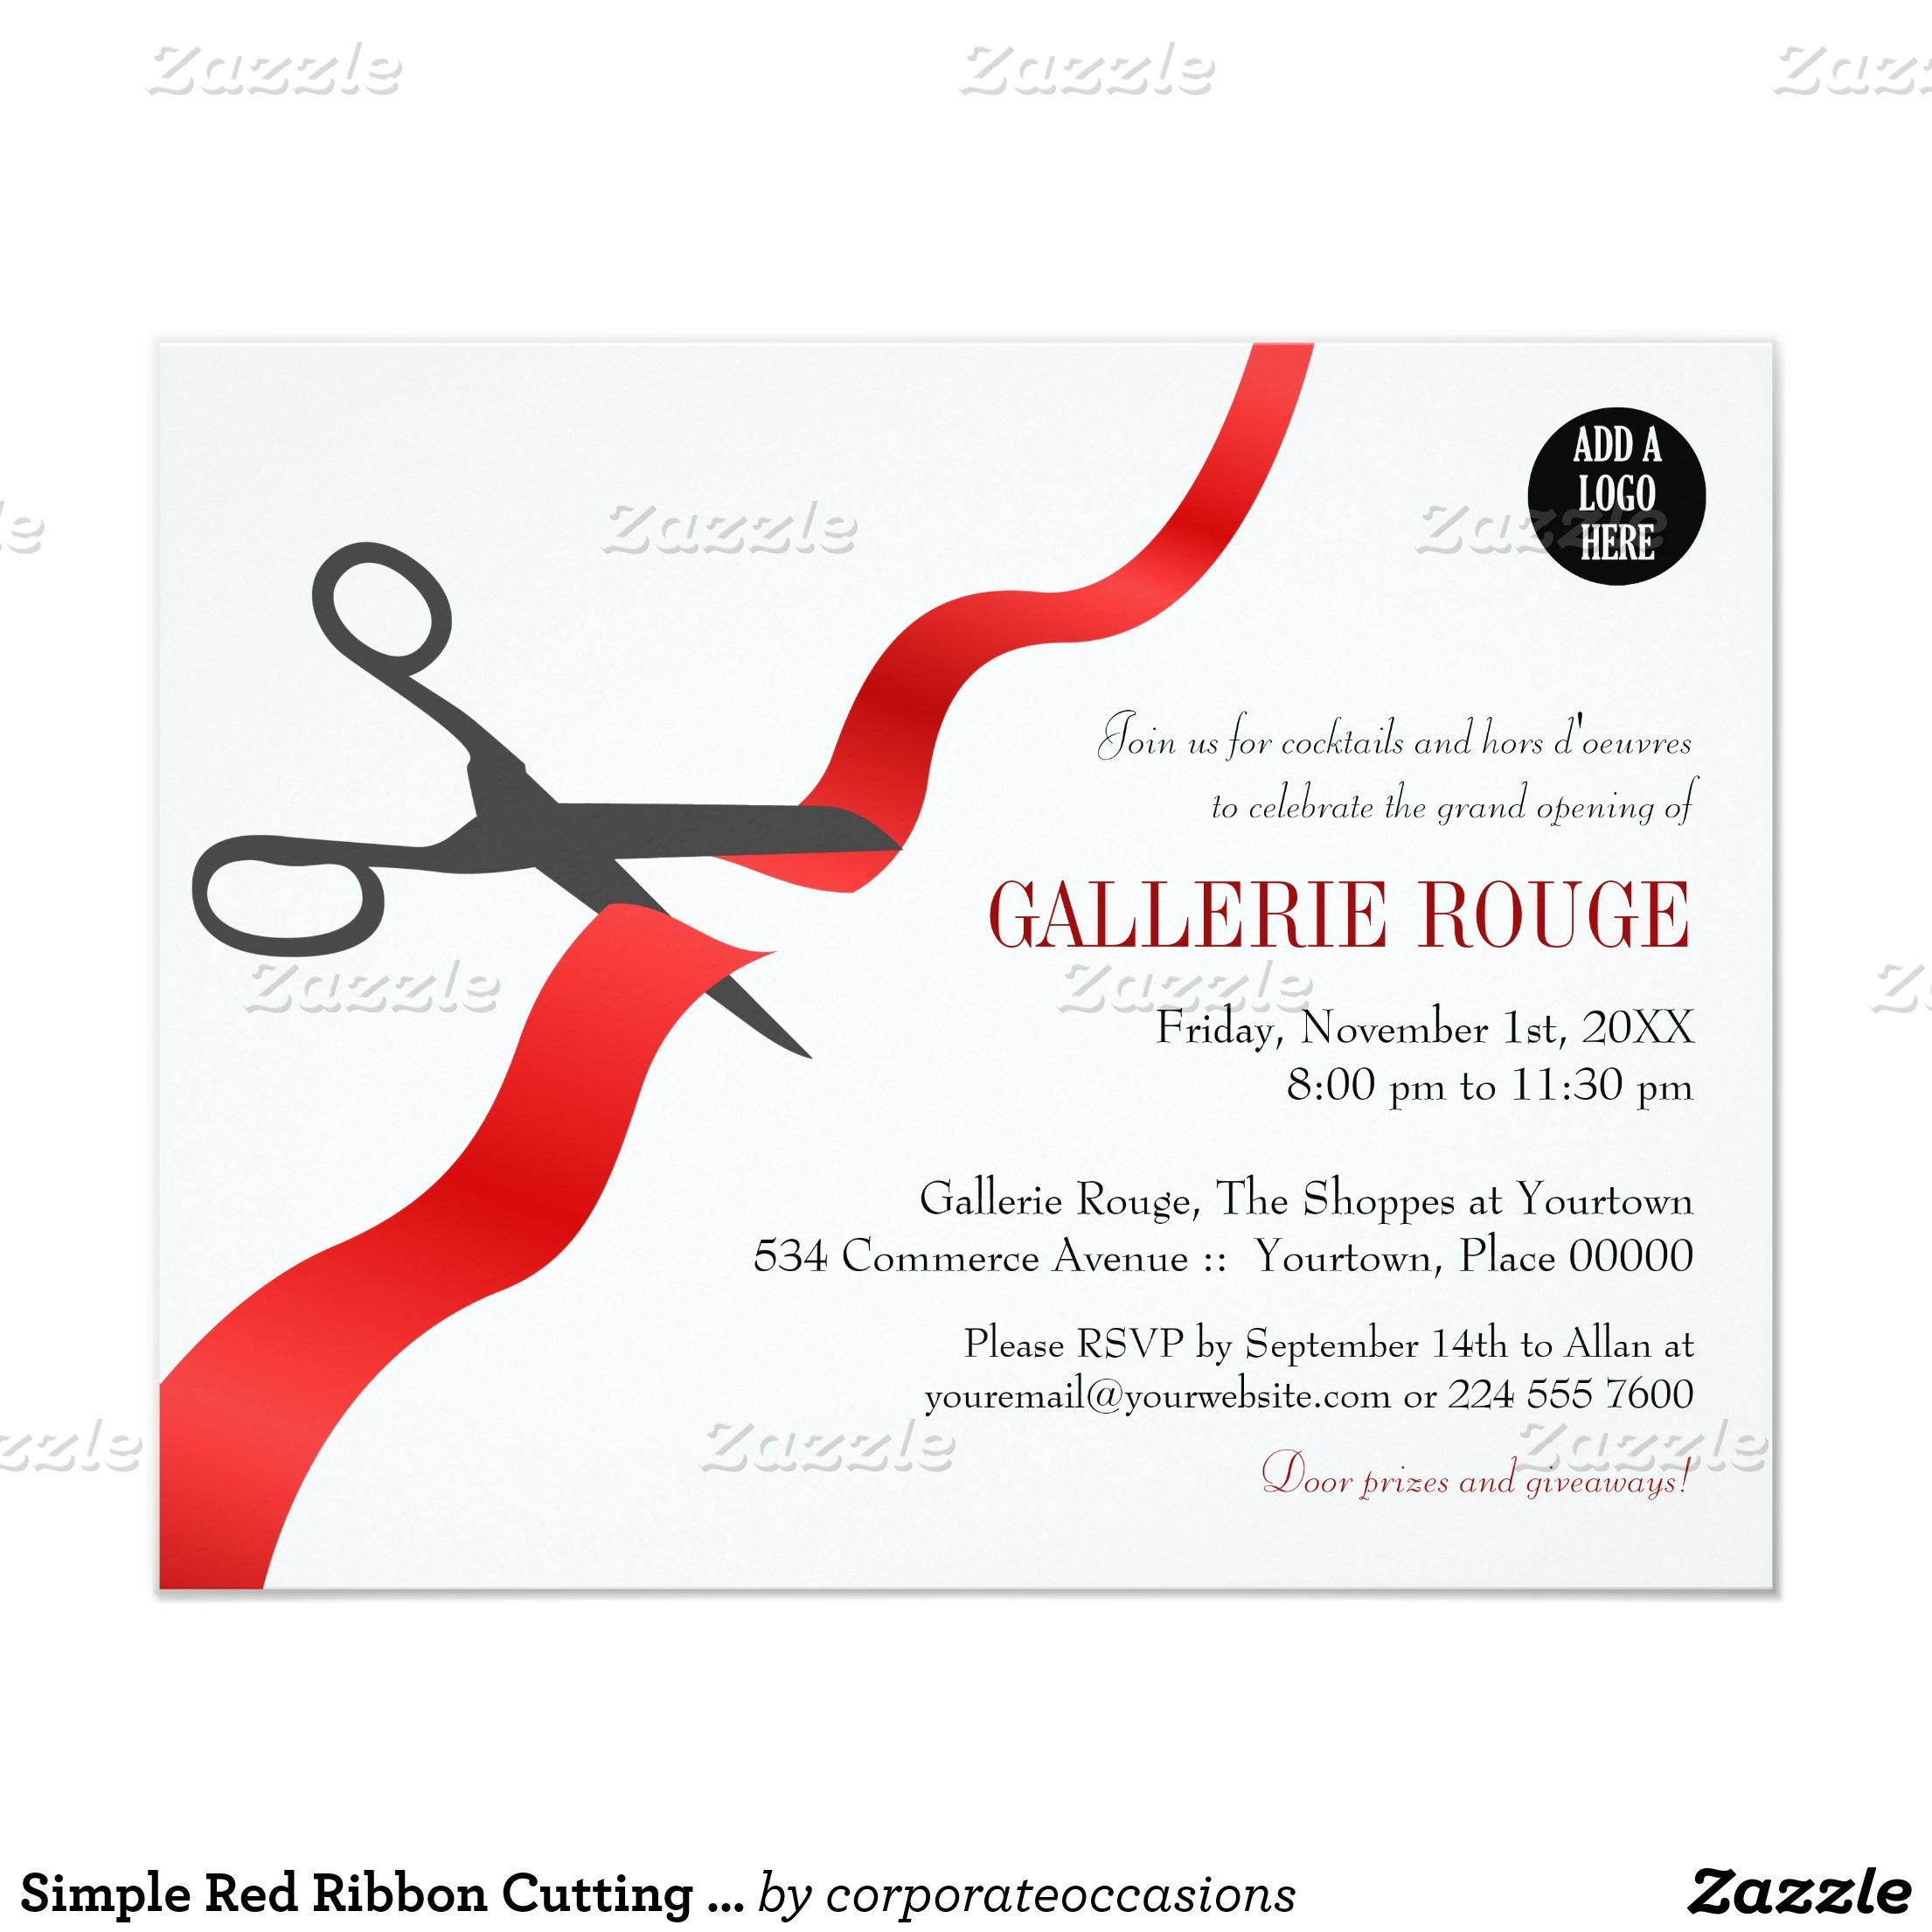 Simple red ribbon cutting grand opening card grand opening pop simple red ribbon cutting grand opening 425x55 paper invitation card stopboris Gallery